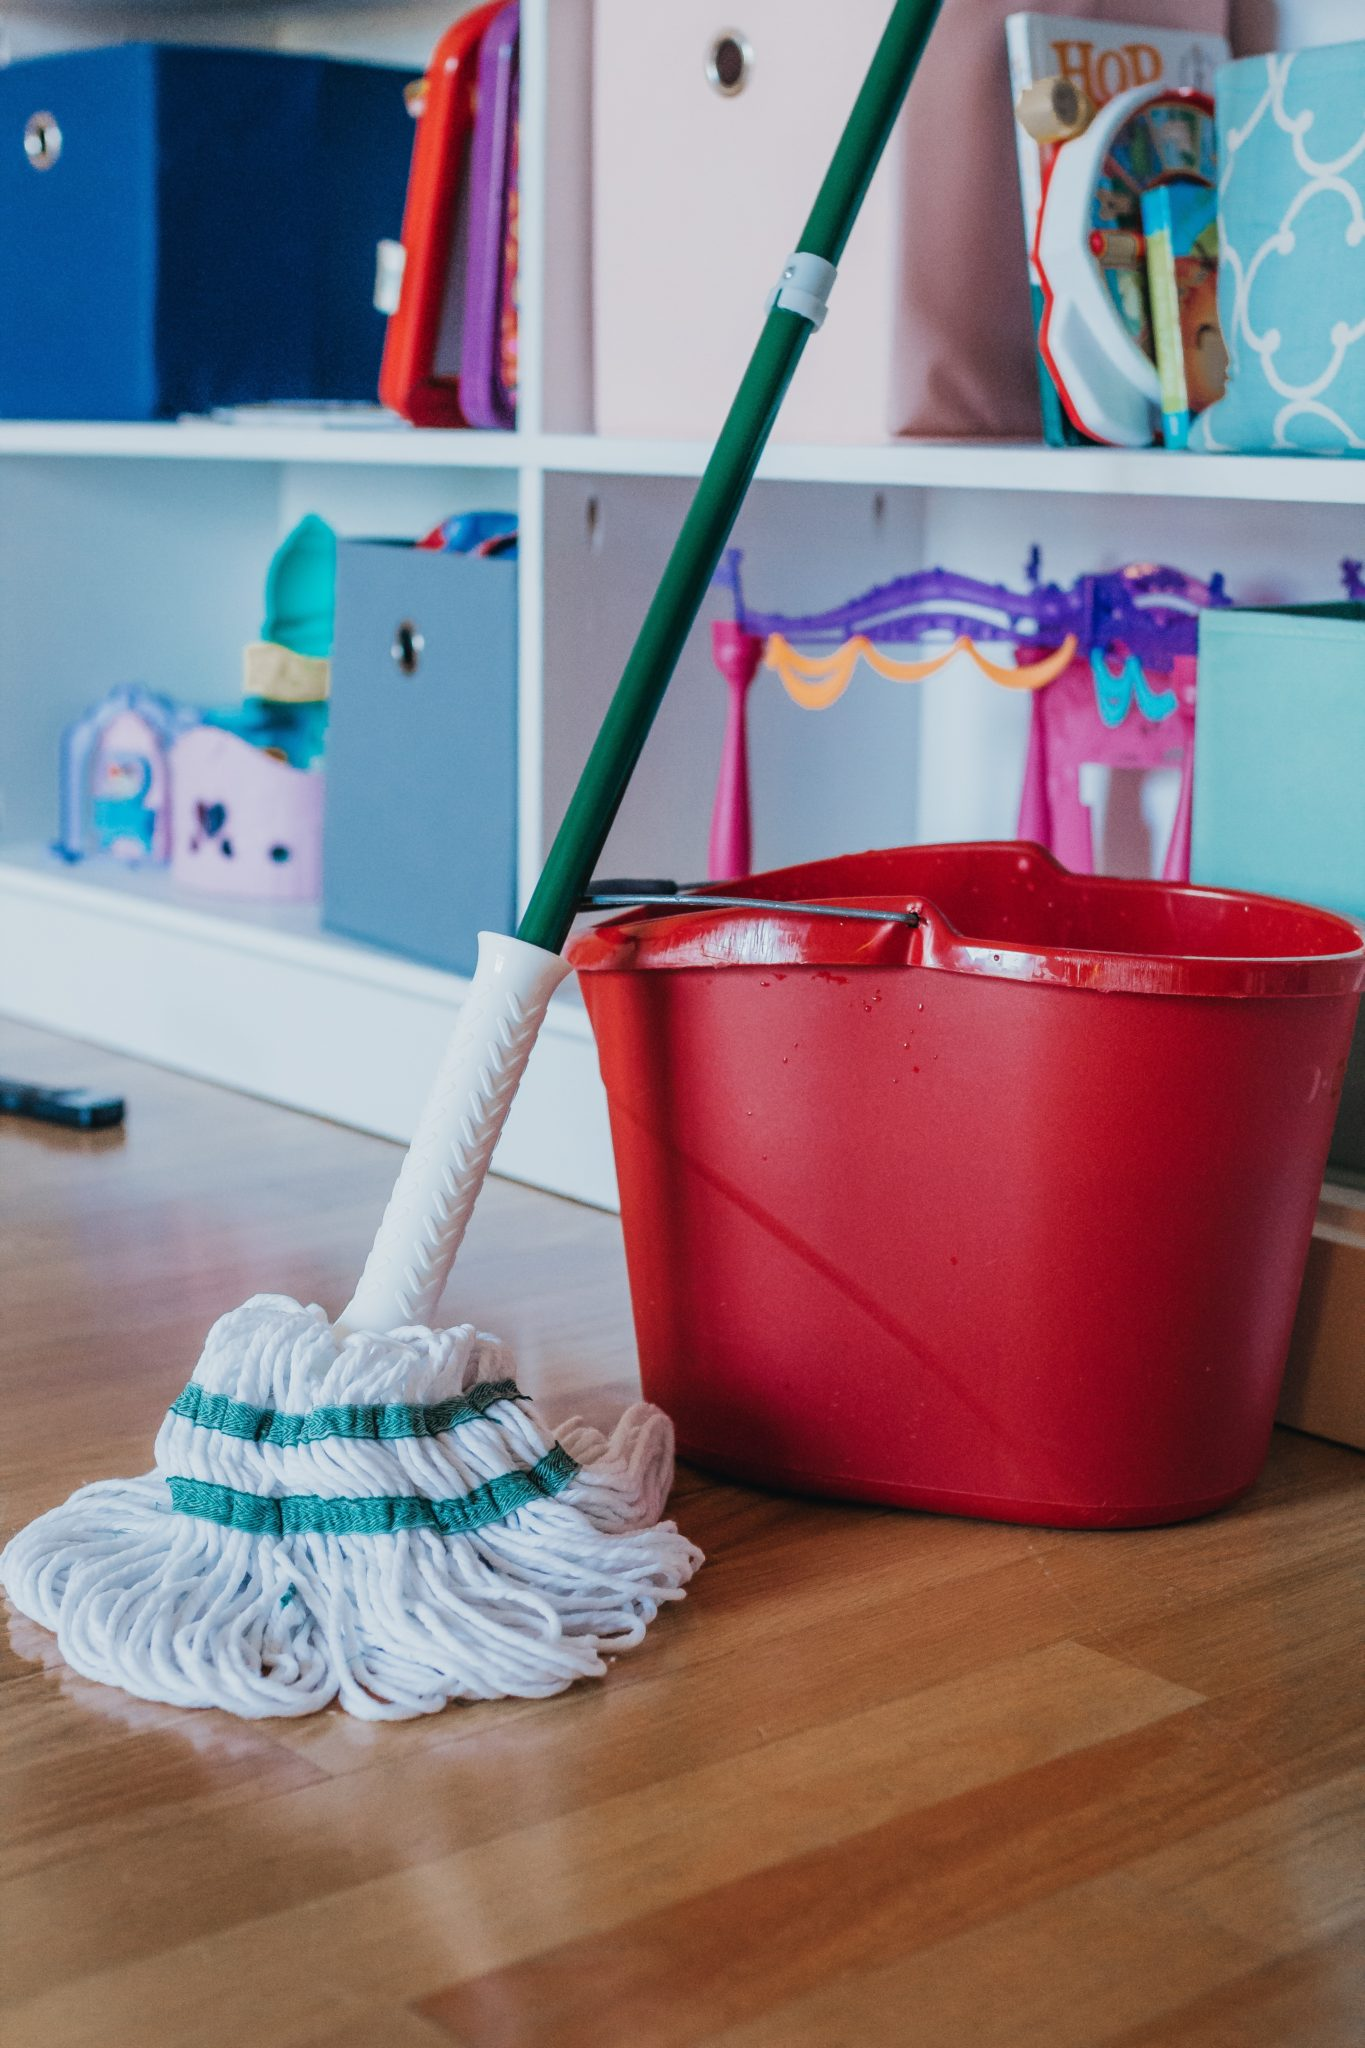 #ad #TheLibmanCompany #EmbraceLifesMesses playroom organization, spring cleaning tips, decluttering your home, spring cleaning organization tips